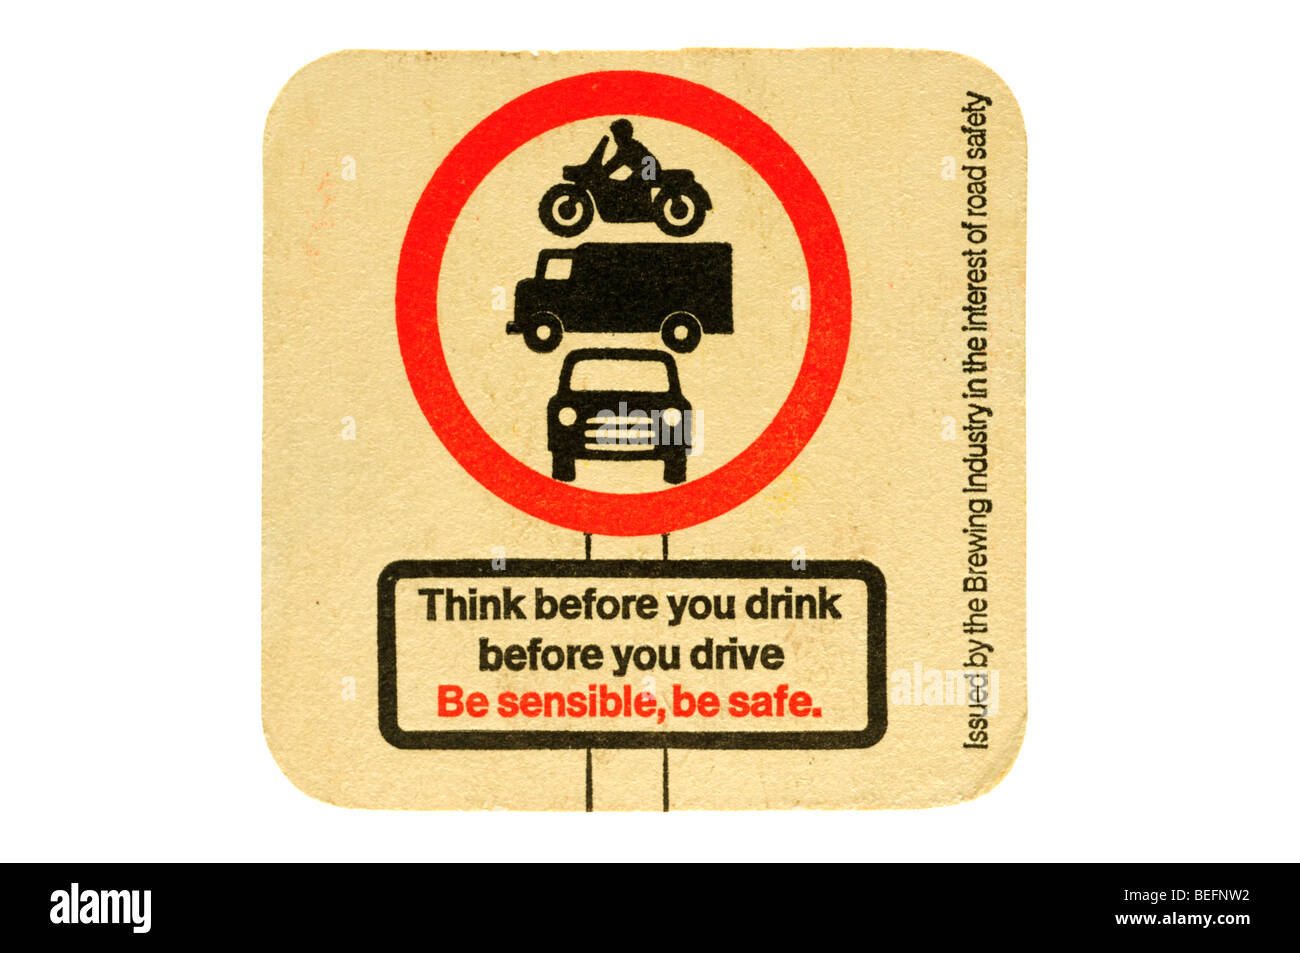 think before you drive be sensible be safe - Stock Image